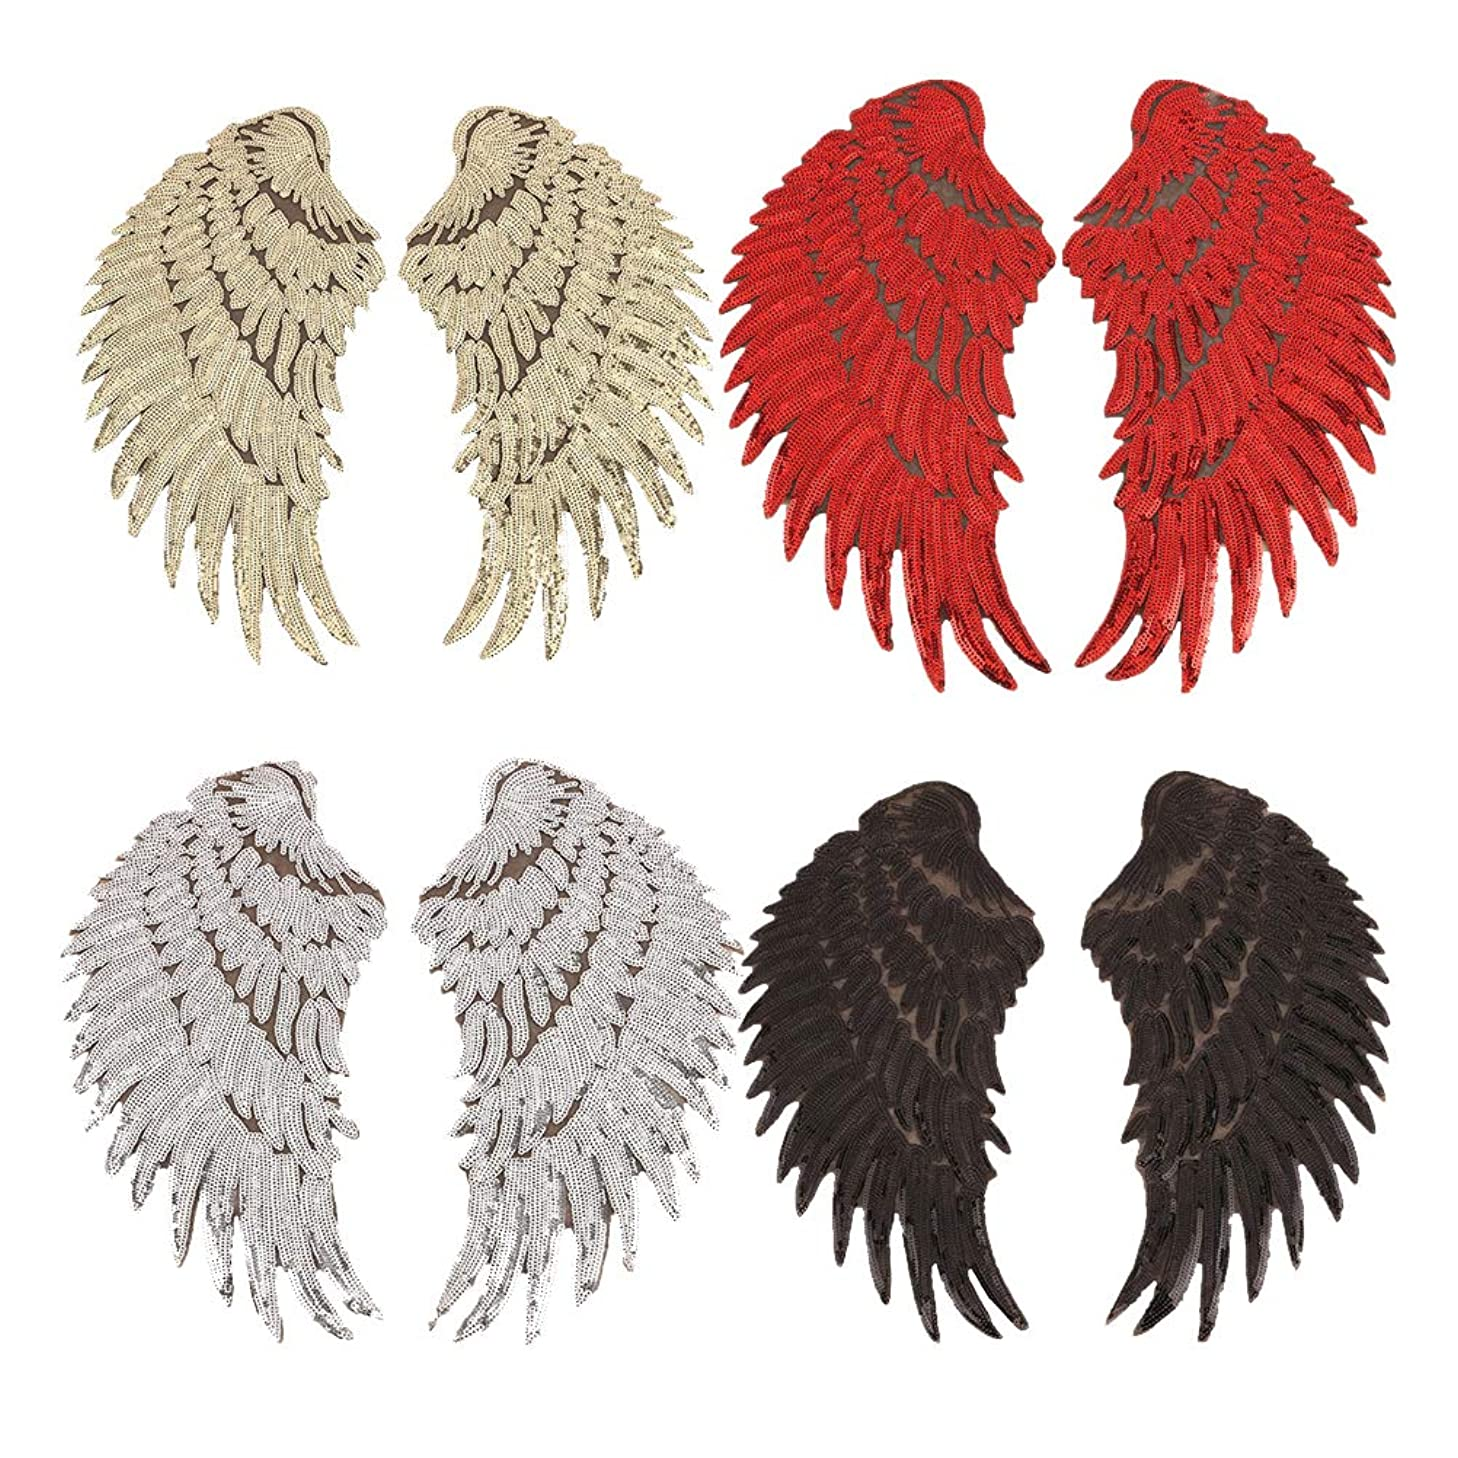 Lwestine 4 Pair Sequins Angel Wings Iron On Patch DIY Embroidered Applique Bling Wings for Jackets Cloth Decoration Valentine's Day Gifts